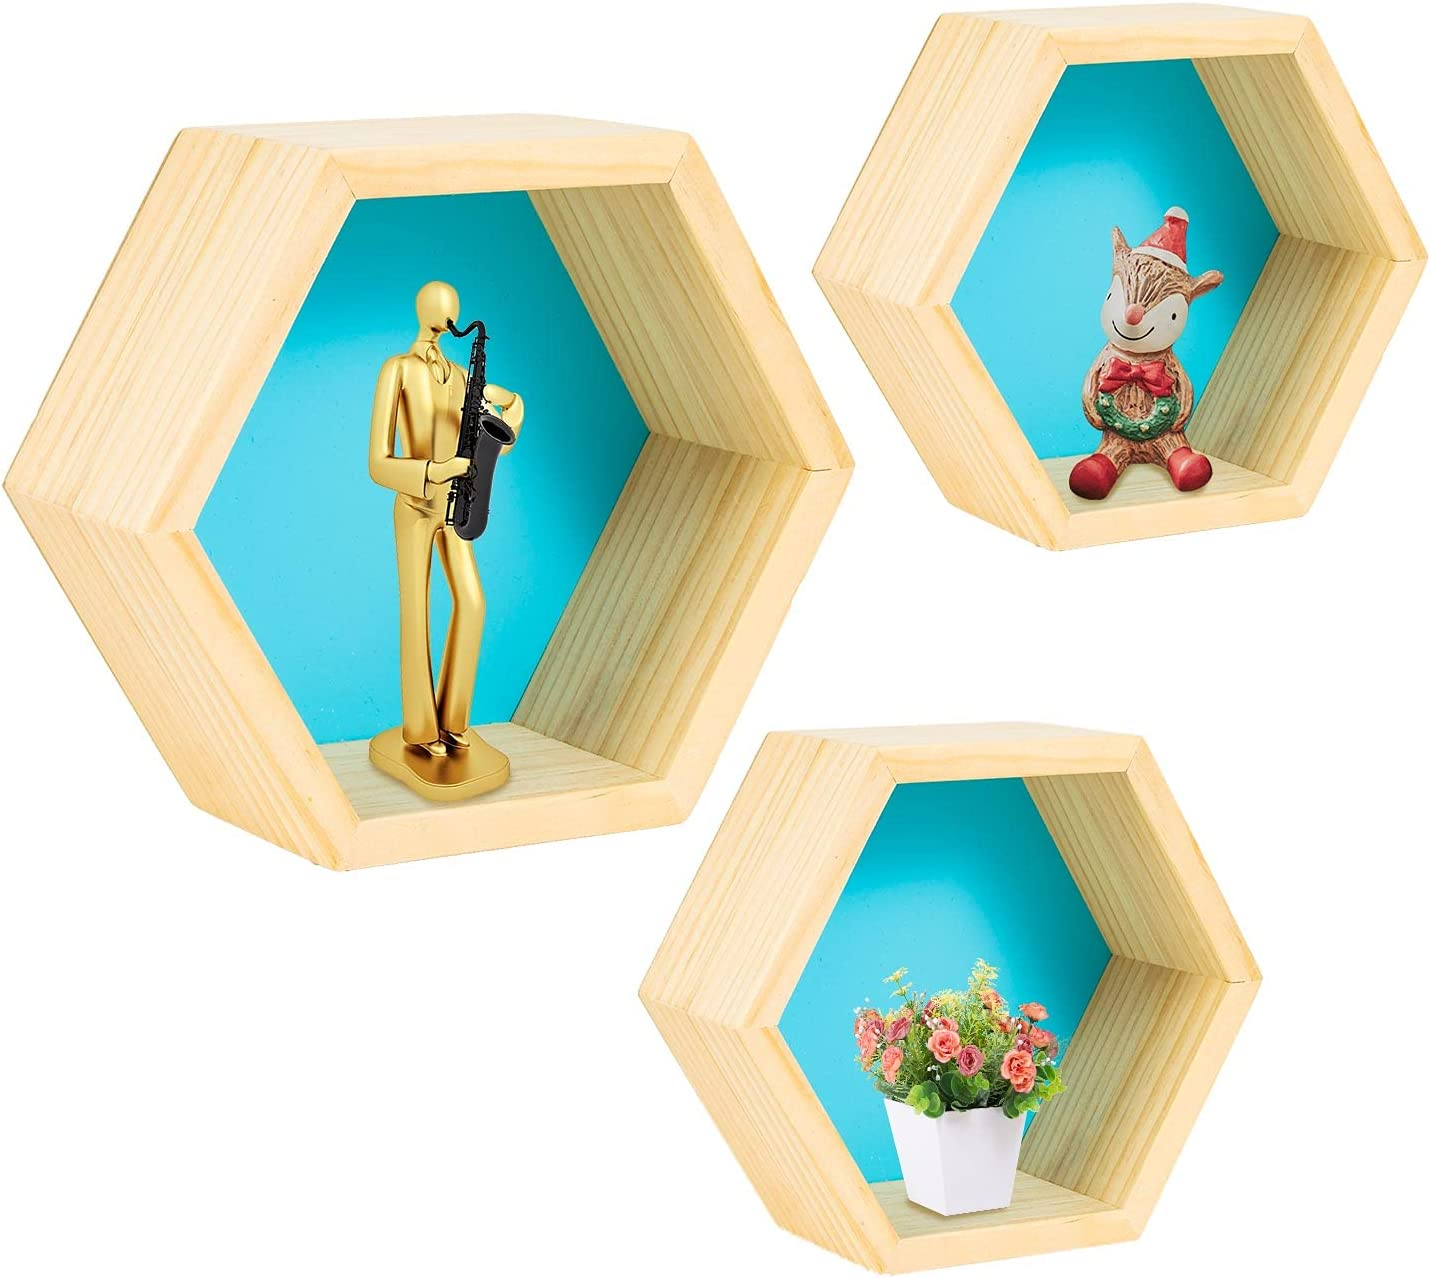 Floating Shelves Wall Mounted Set of 3, Geometric Hexagon Shaped Storage Shelves Home Decor for Bedroom, Hallway, Office, Living Room, Kitchen (Blue)